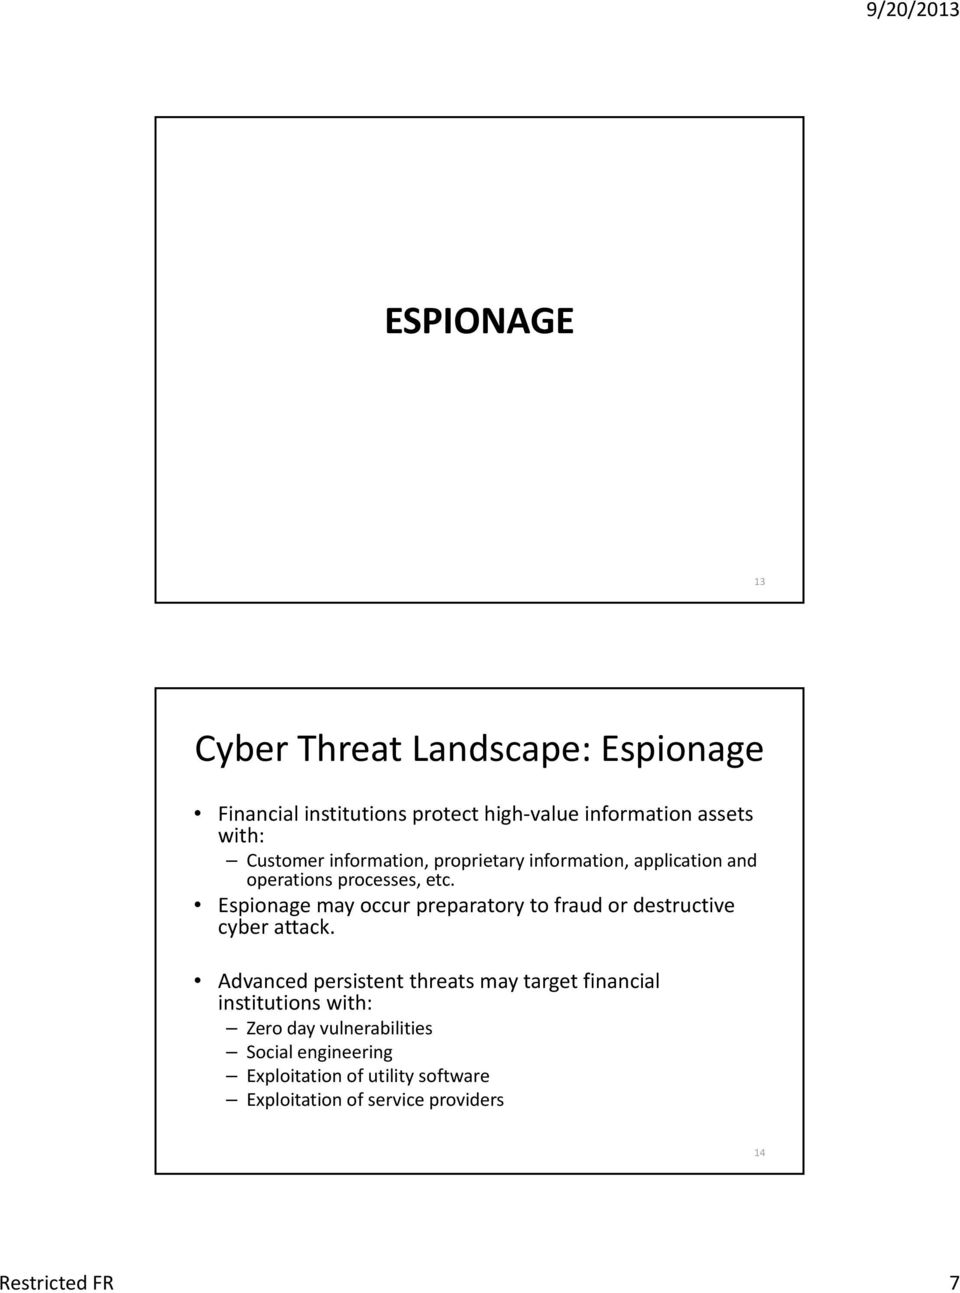 Espionage may occur preparatory to fraud or destructive cyber attack.